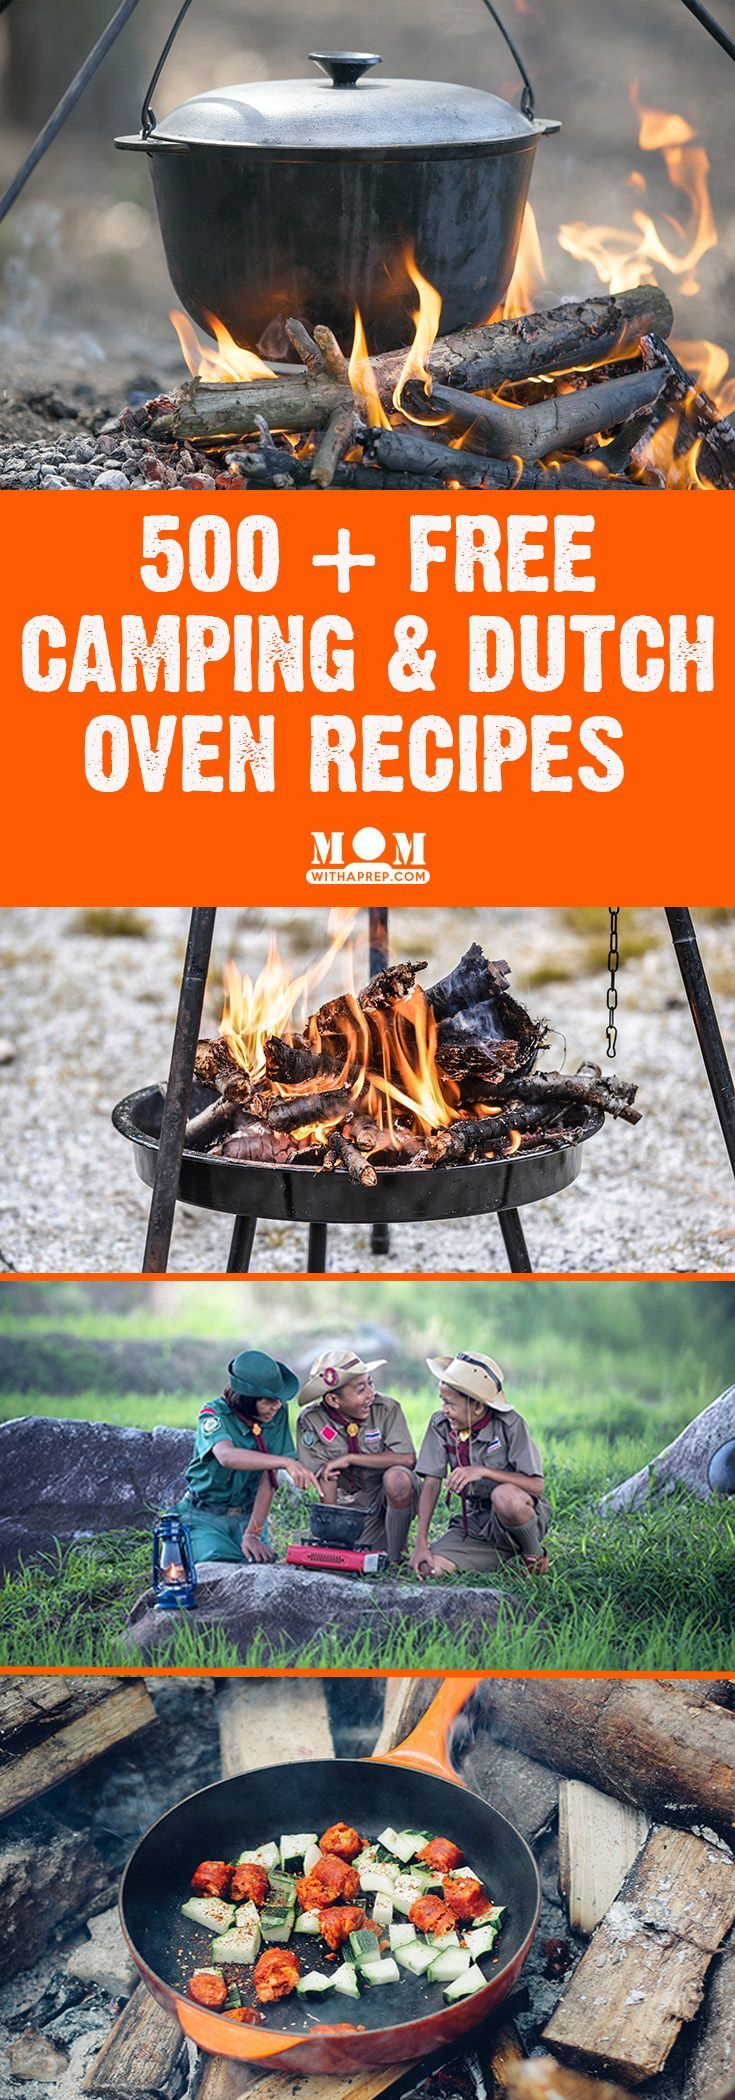 FREE DOWNLOAD: 500+ Camping & Dutch Oven Recipes - perfect for camping out, Boy Scouts, Girl Scouts and summer backyard camping adventures.